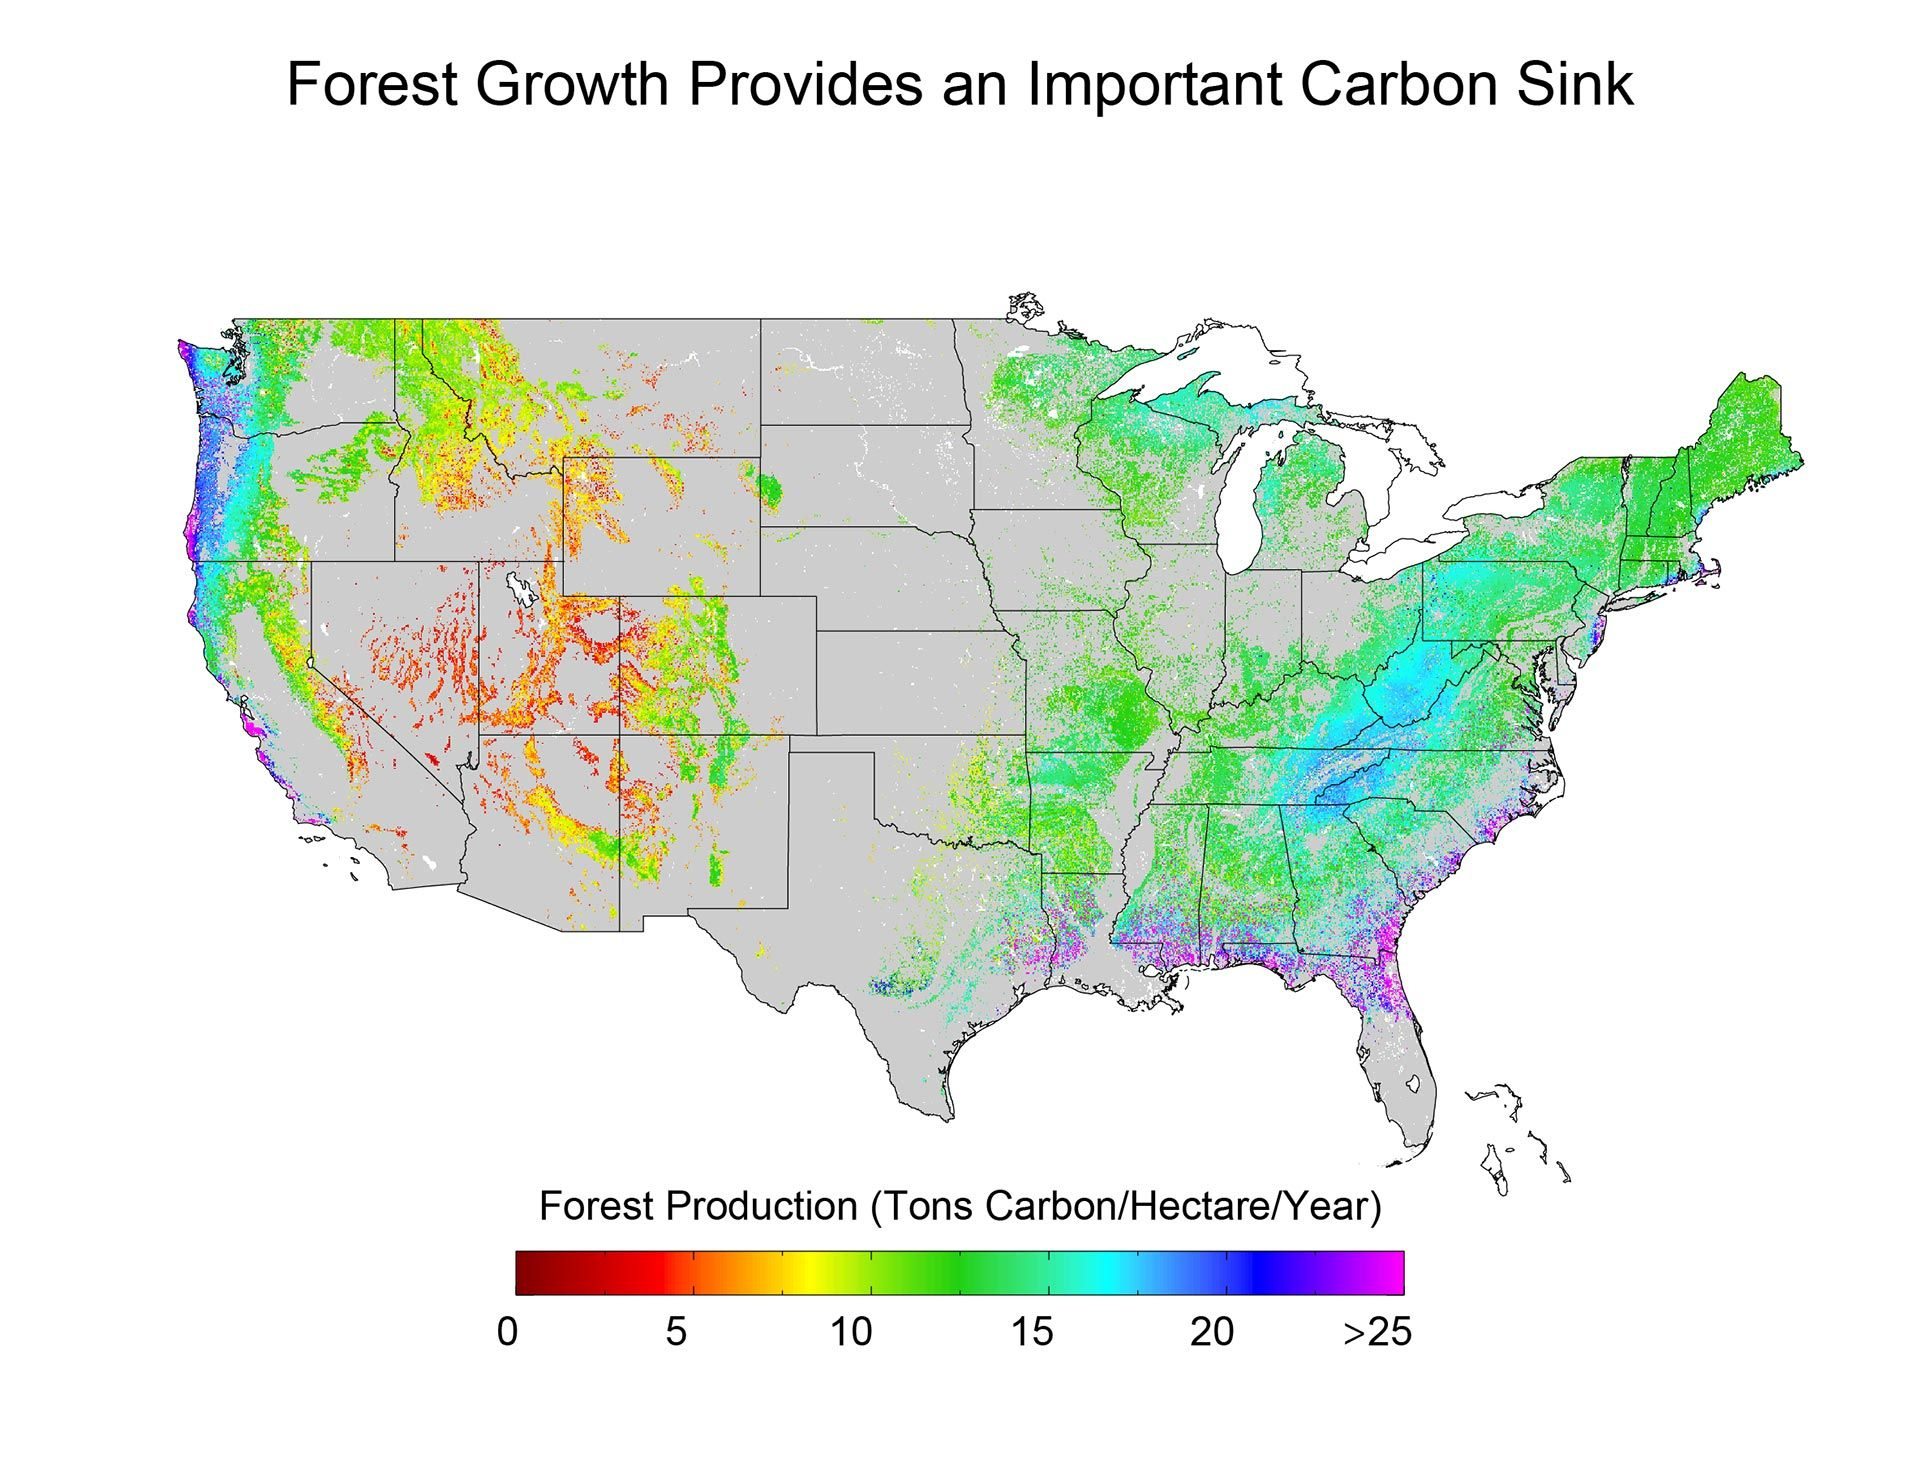 medium resolution of forest growth provides an important carbon sink carbon sink climate change assessment business